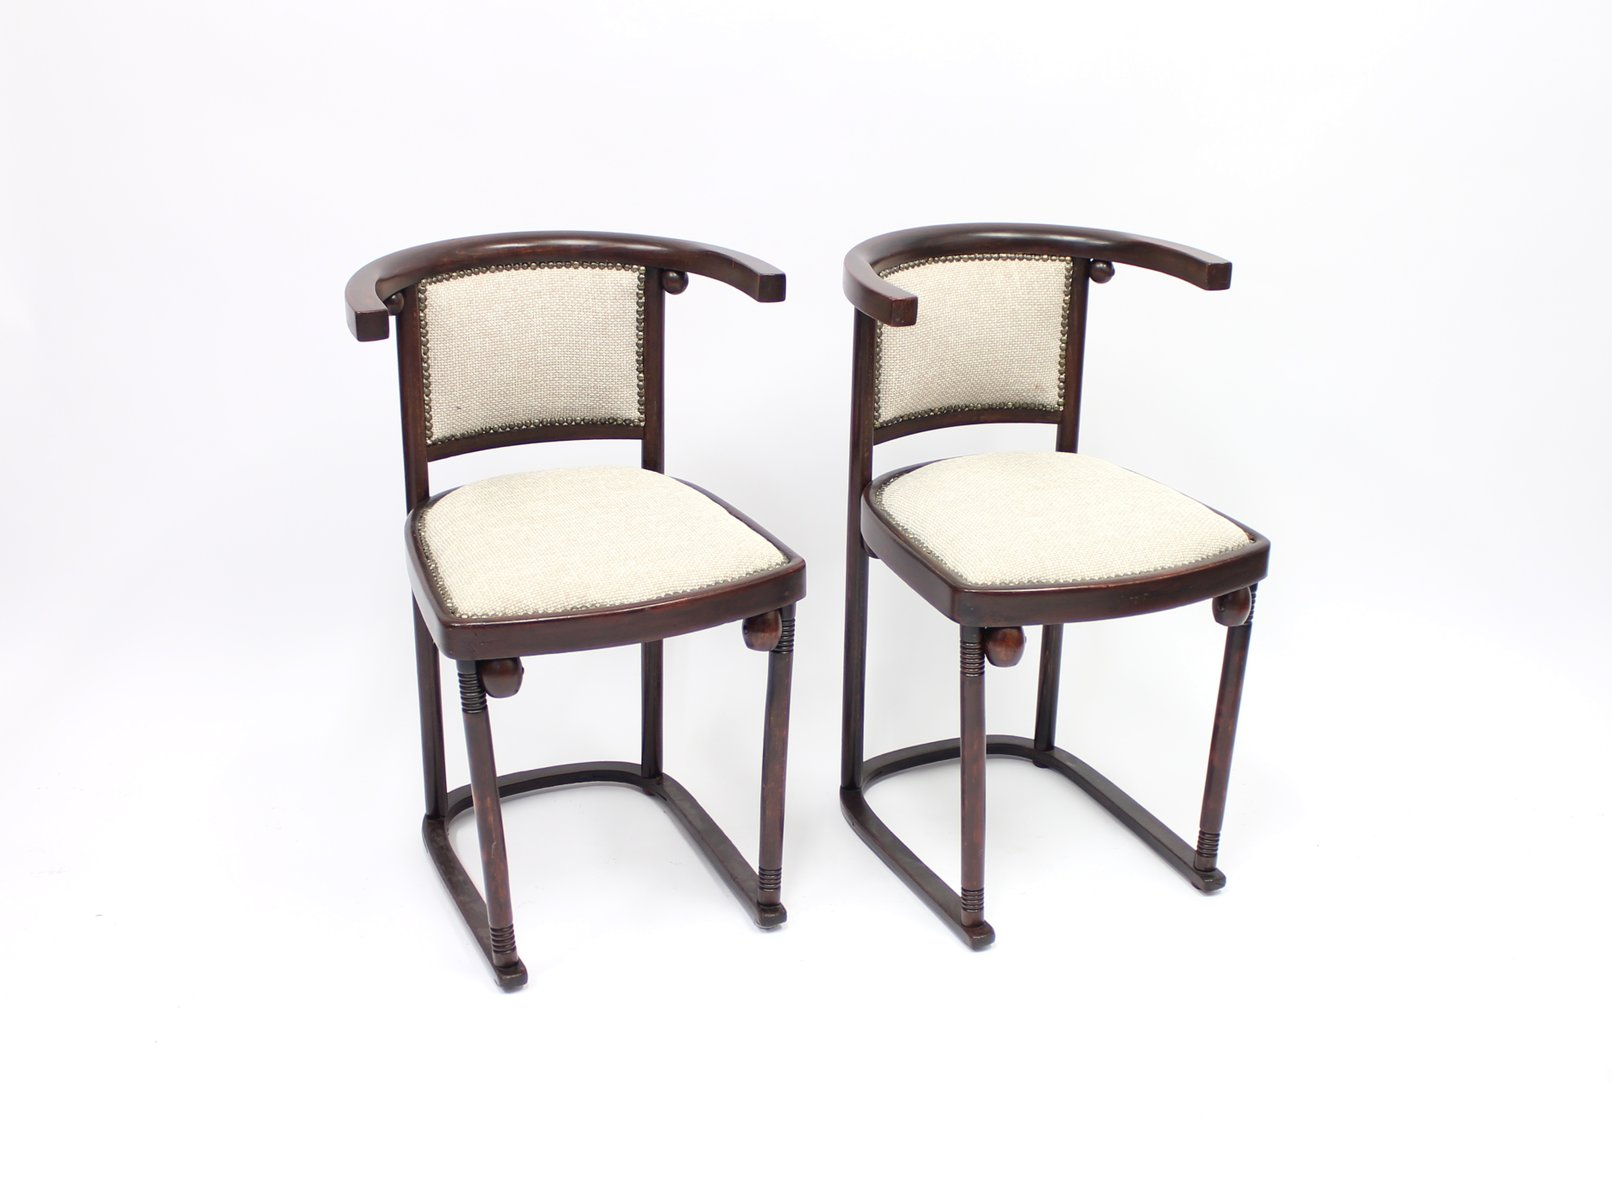 fledermaus kabarett st hle von josef hoffmann f r thonet 2er set bei pamono kaufen. Black Bedroom Furniture Sets. Home Design Ideas